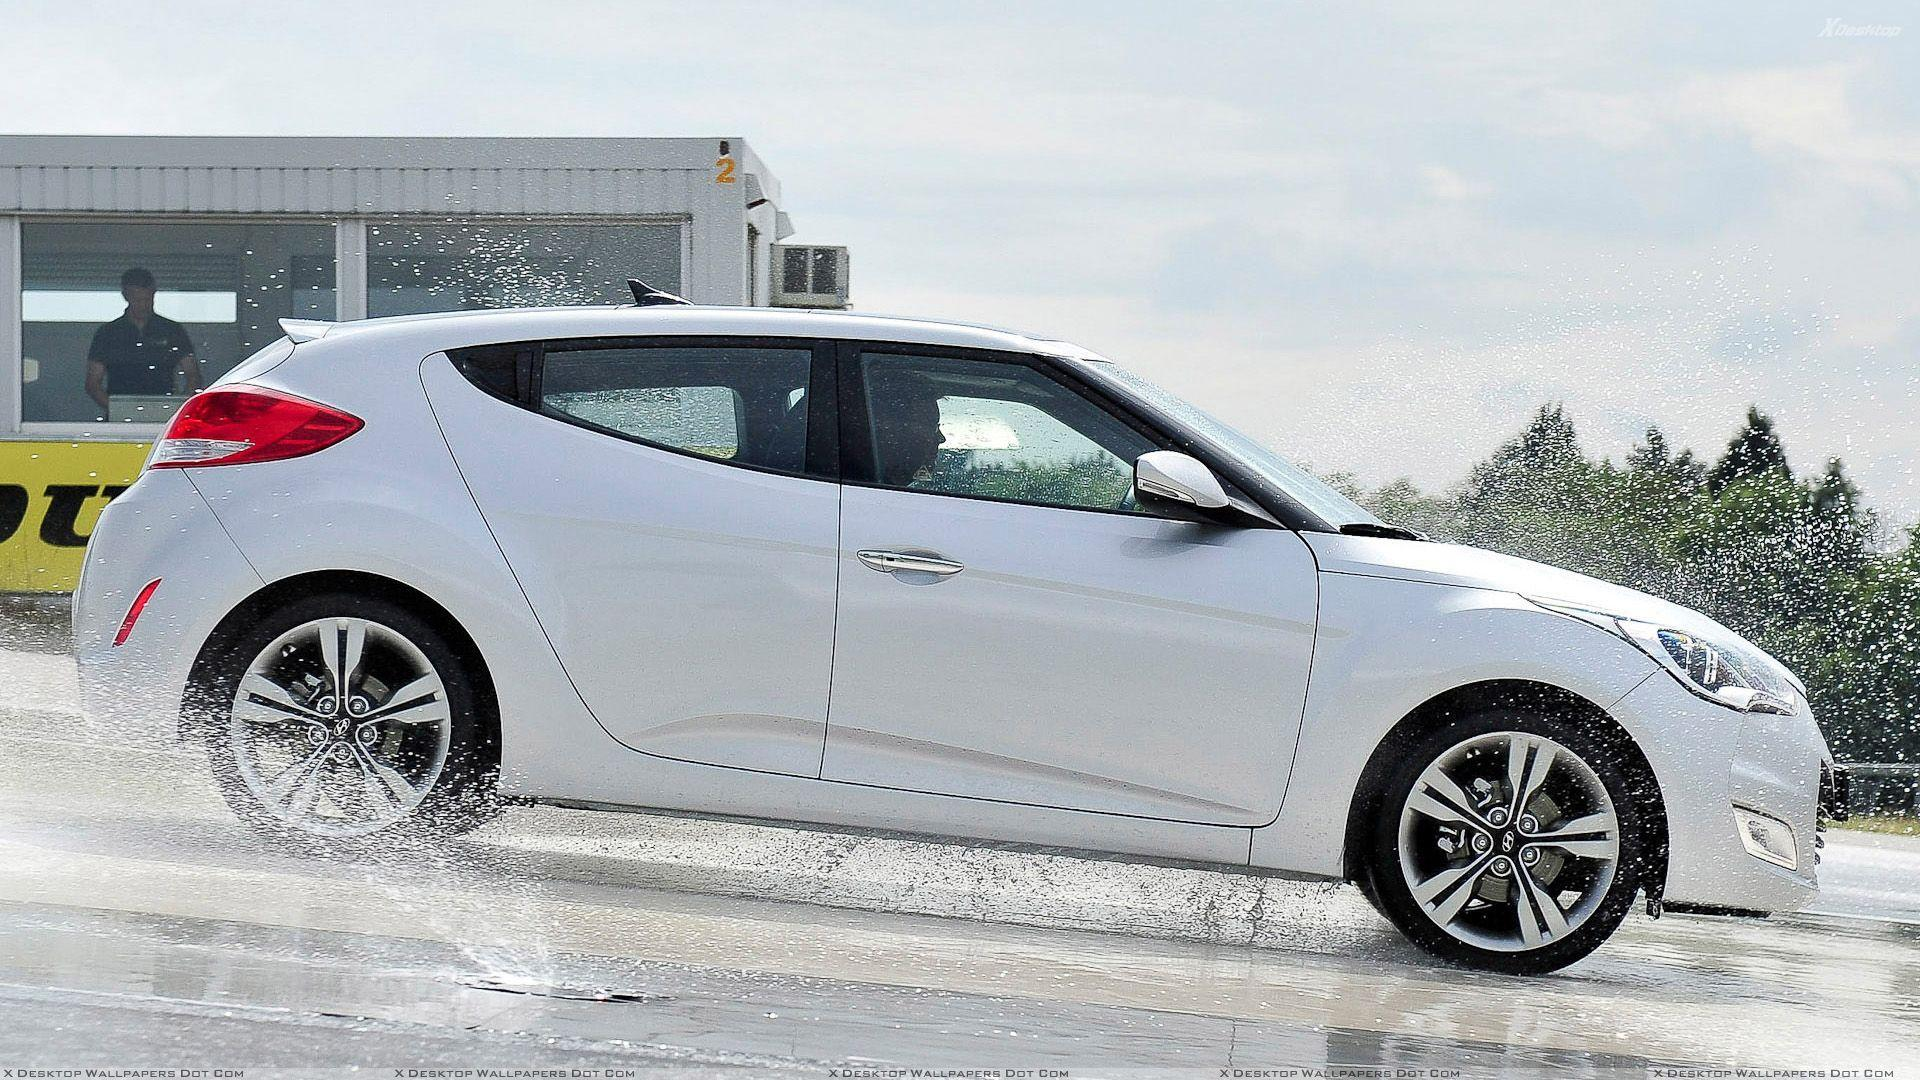 Hyundai Wallpapers, Photos & Image in HD